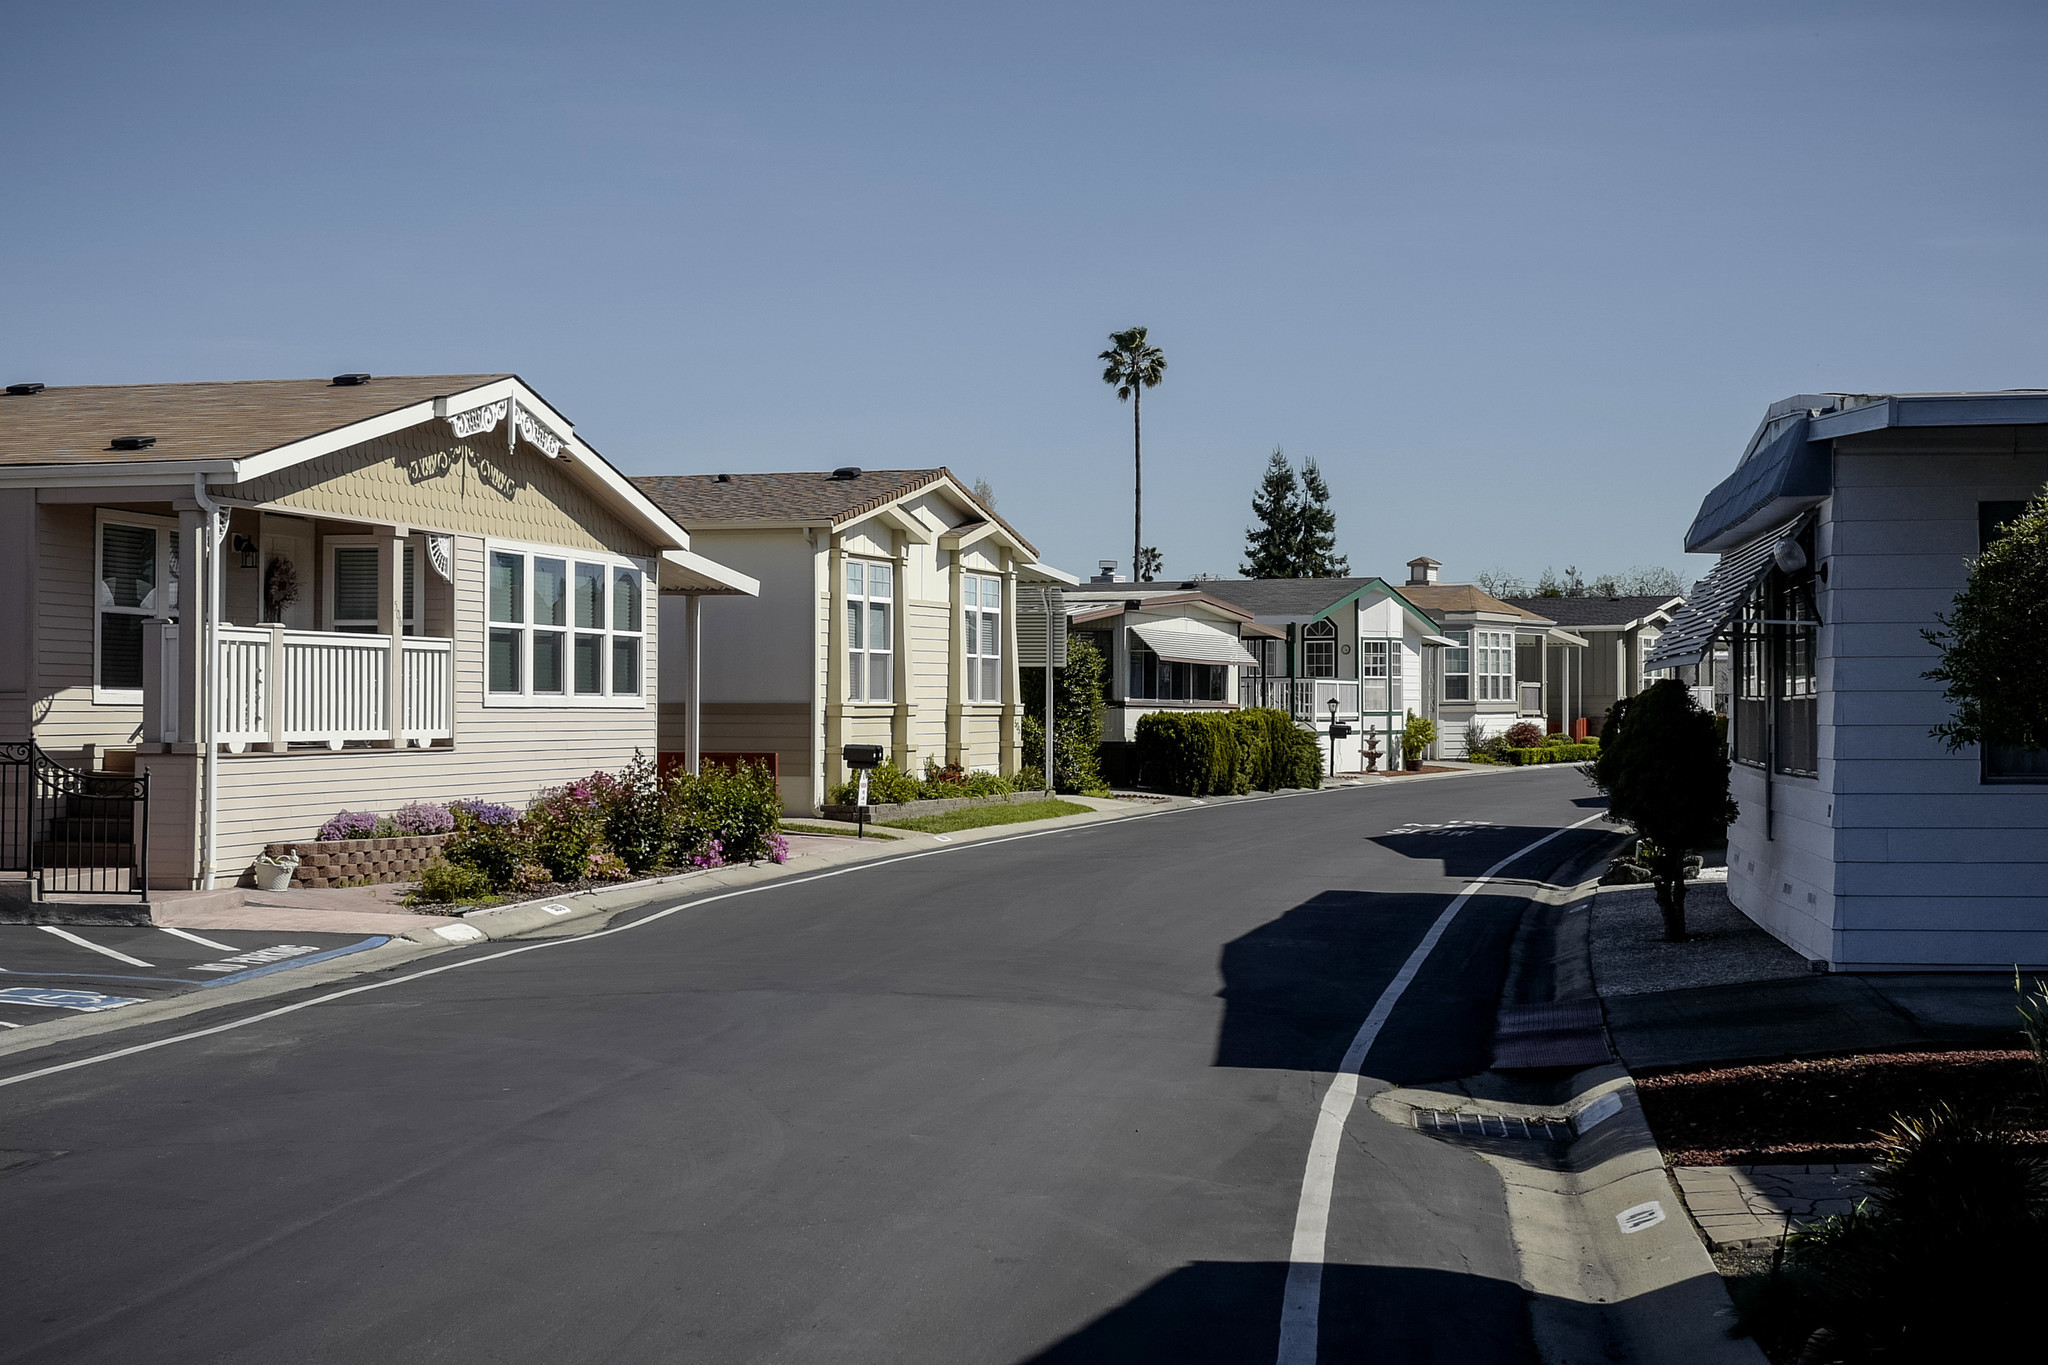 In Silicon Valley, even mobile homes are getting too pricey ... on a lincoln home, a split level home, a arizona home, a minimalist home, a kansas home, a simple home, a rental home, a new york home, a hong kong home,